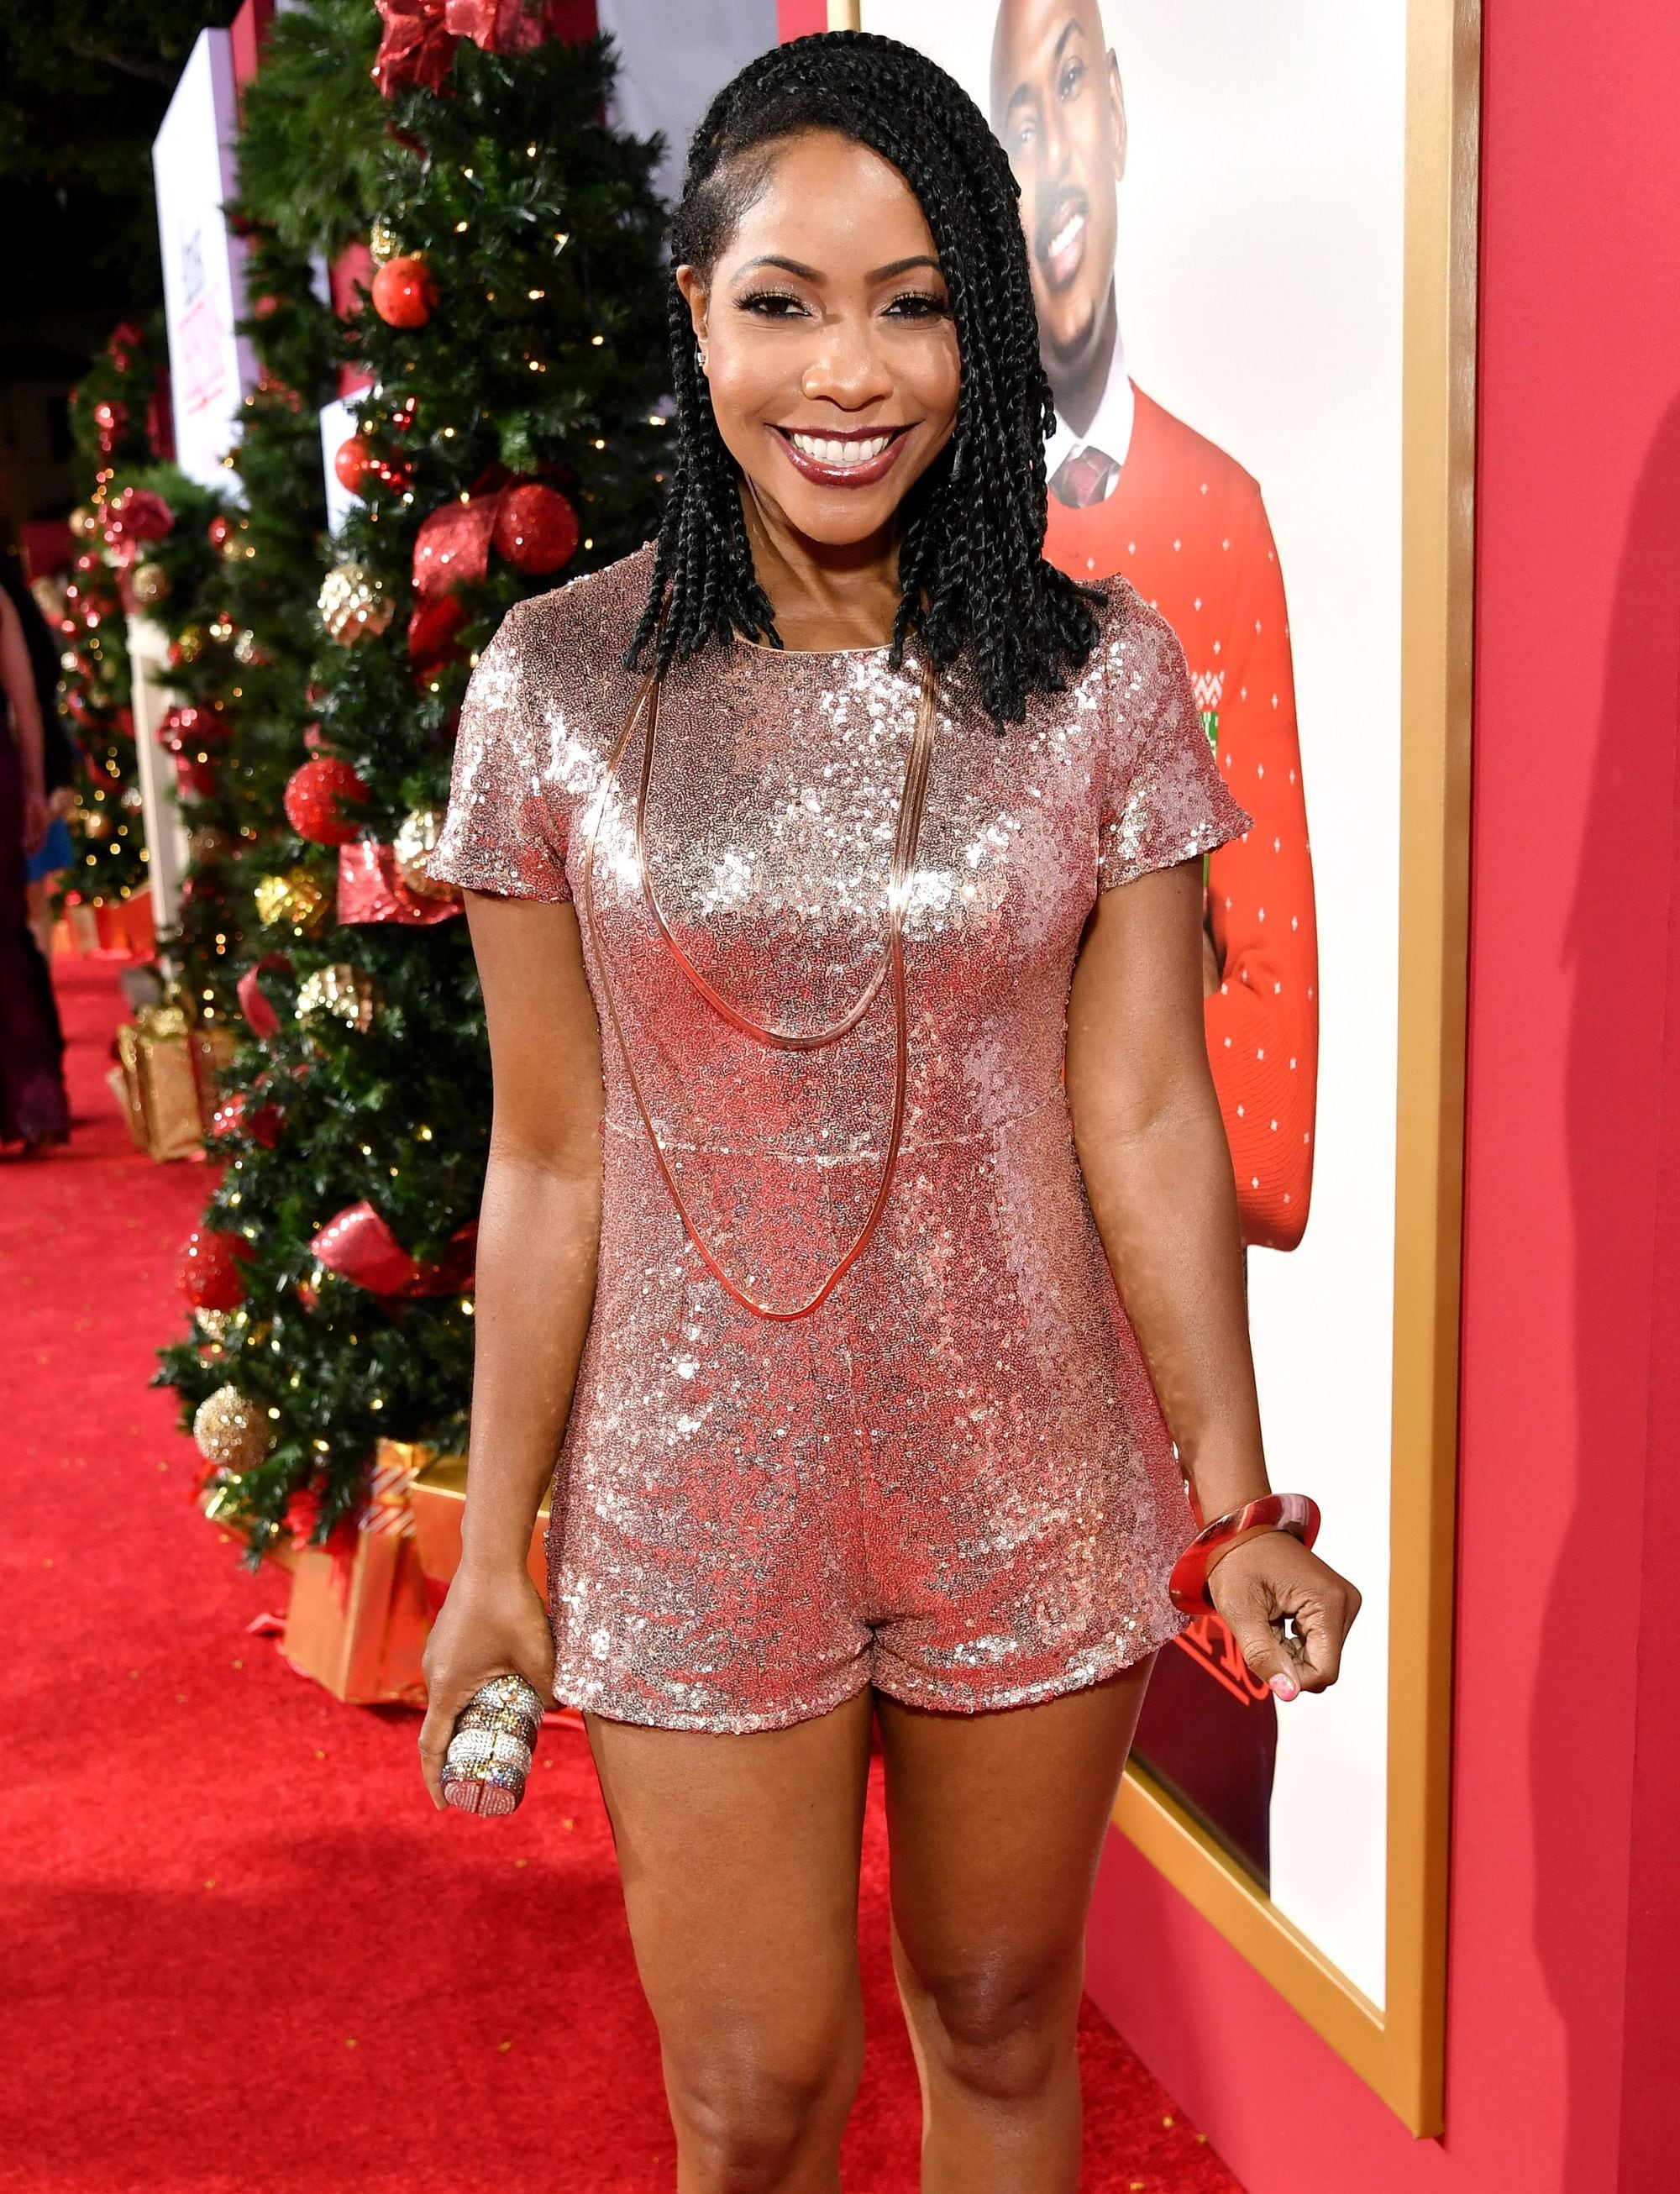 short kinky twist styles: shadia omar with lob kinky twists wearing sparkly playsuit on red carpet